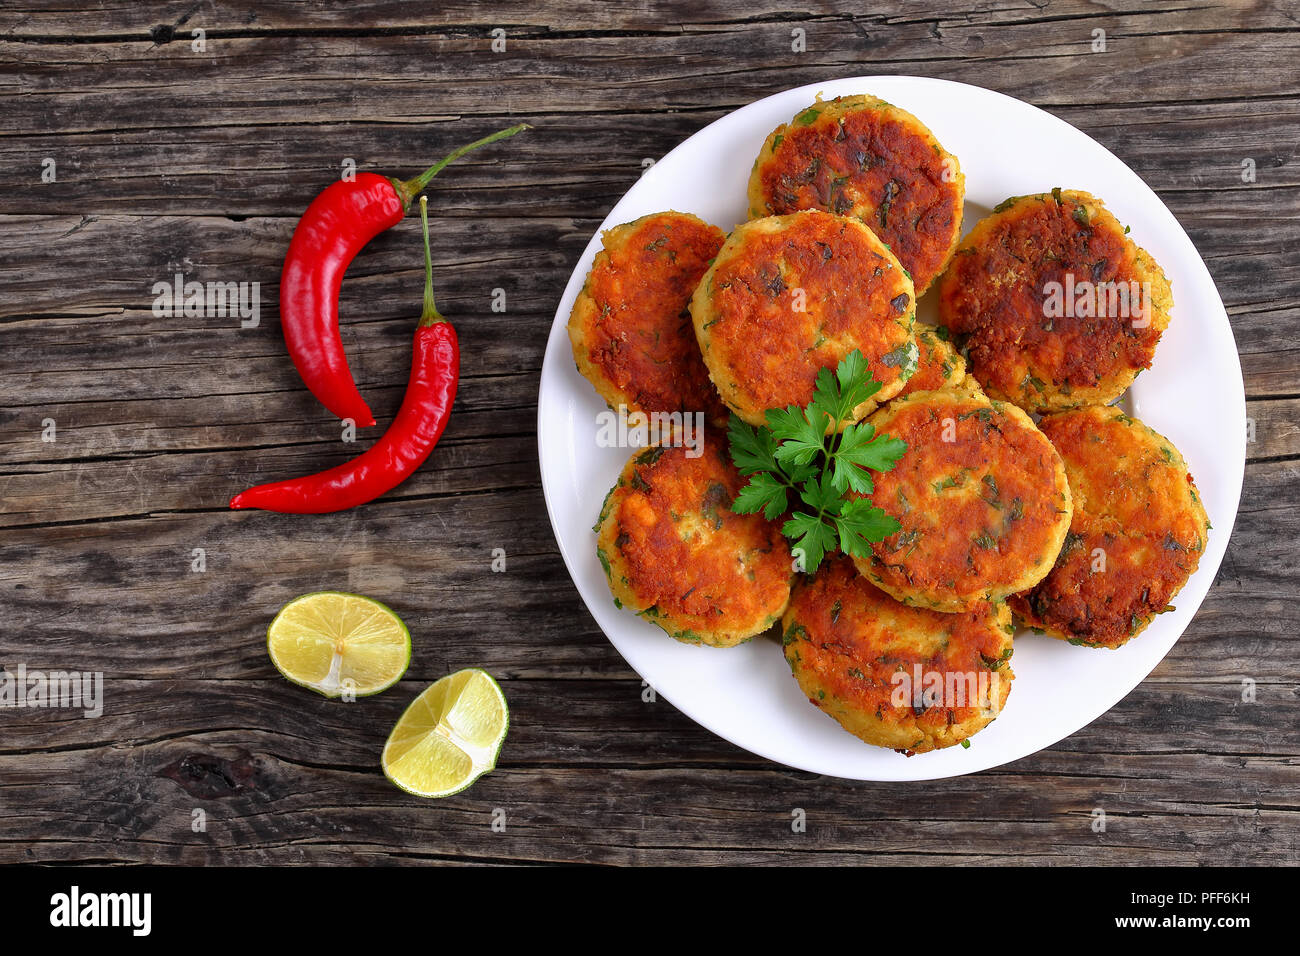 delicious fresh fried homemade fish cakes with mashed potato on plate with lime slices on dark wooden table, classic recipe, view from above - Stock Image